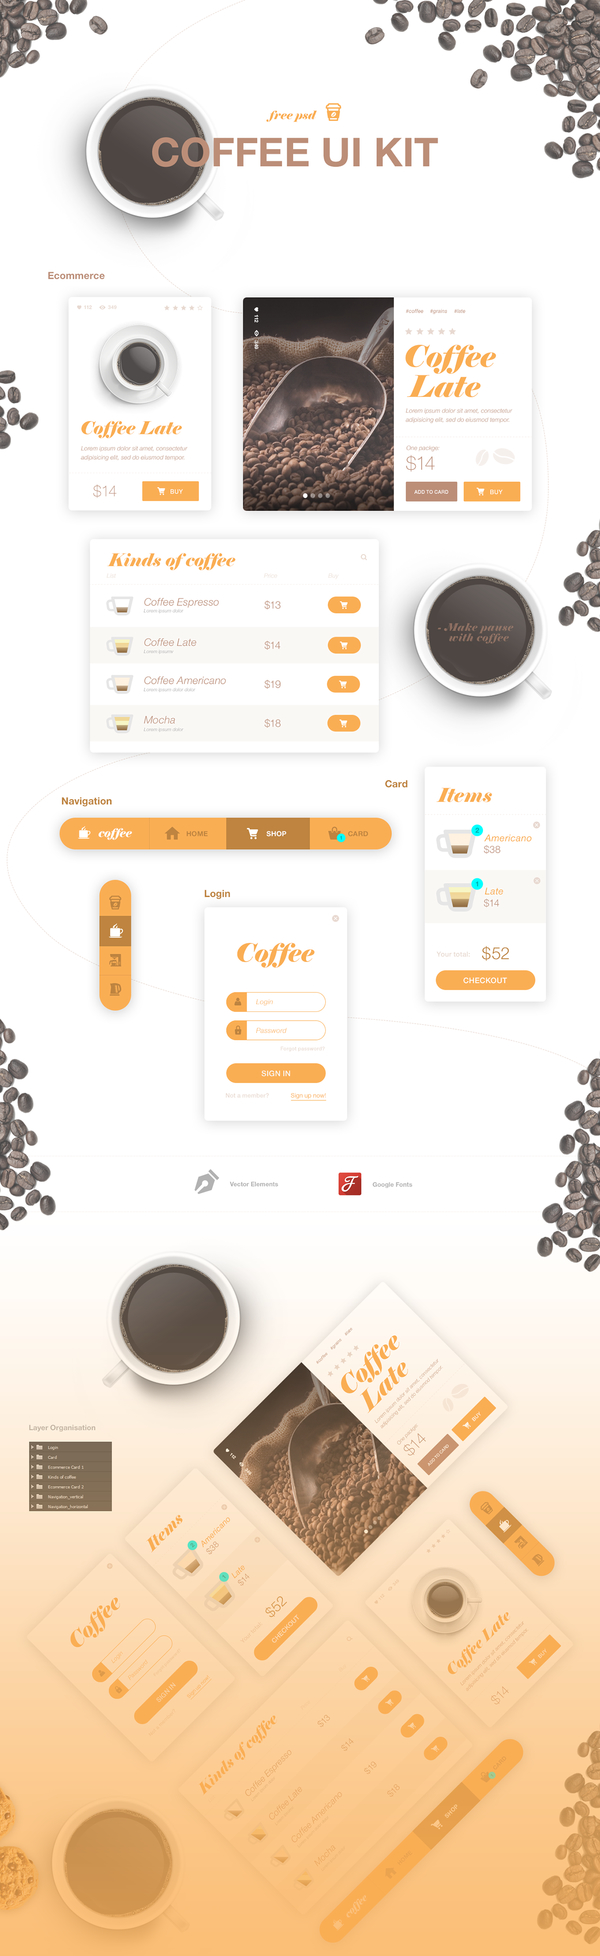 coffee-ui-kit